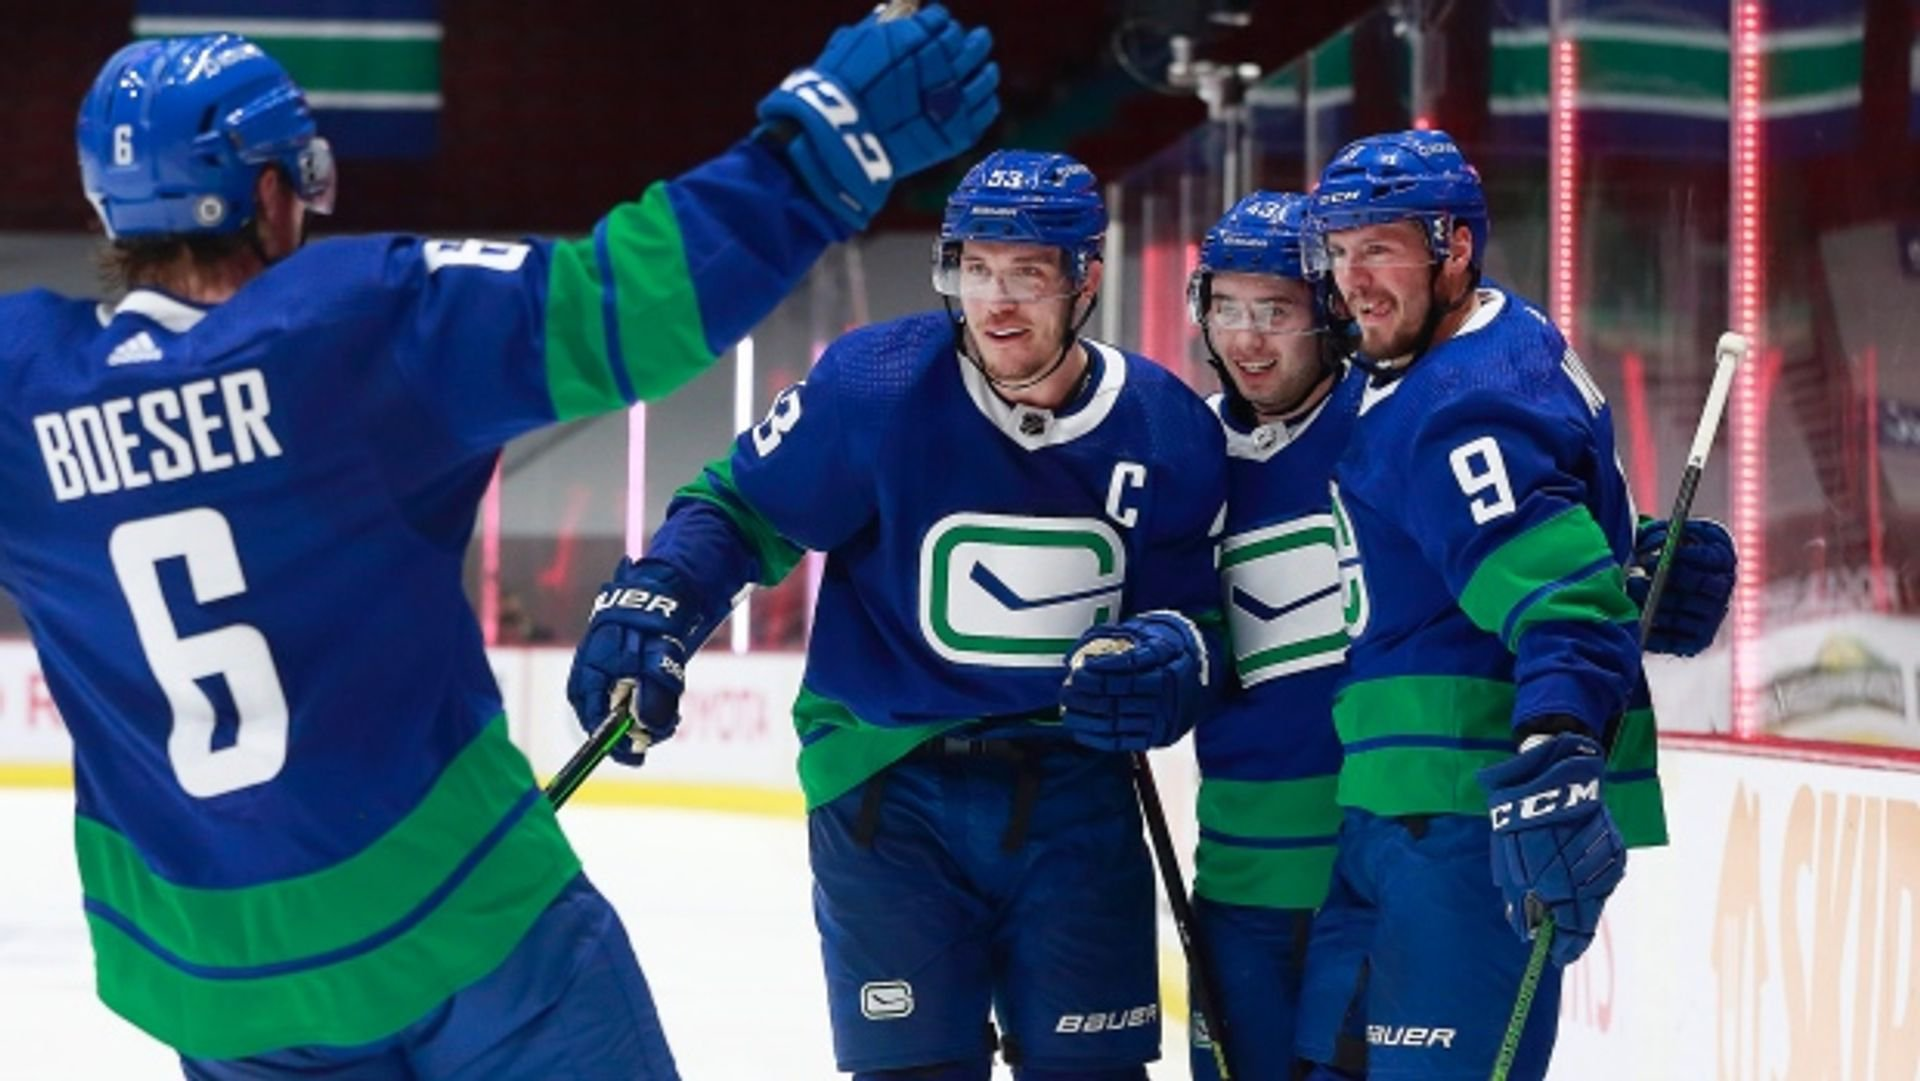 Value in Vancouver As Surging Canucks A Good Bet to Down Canadiens Again